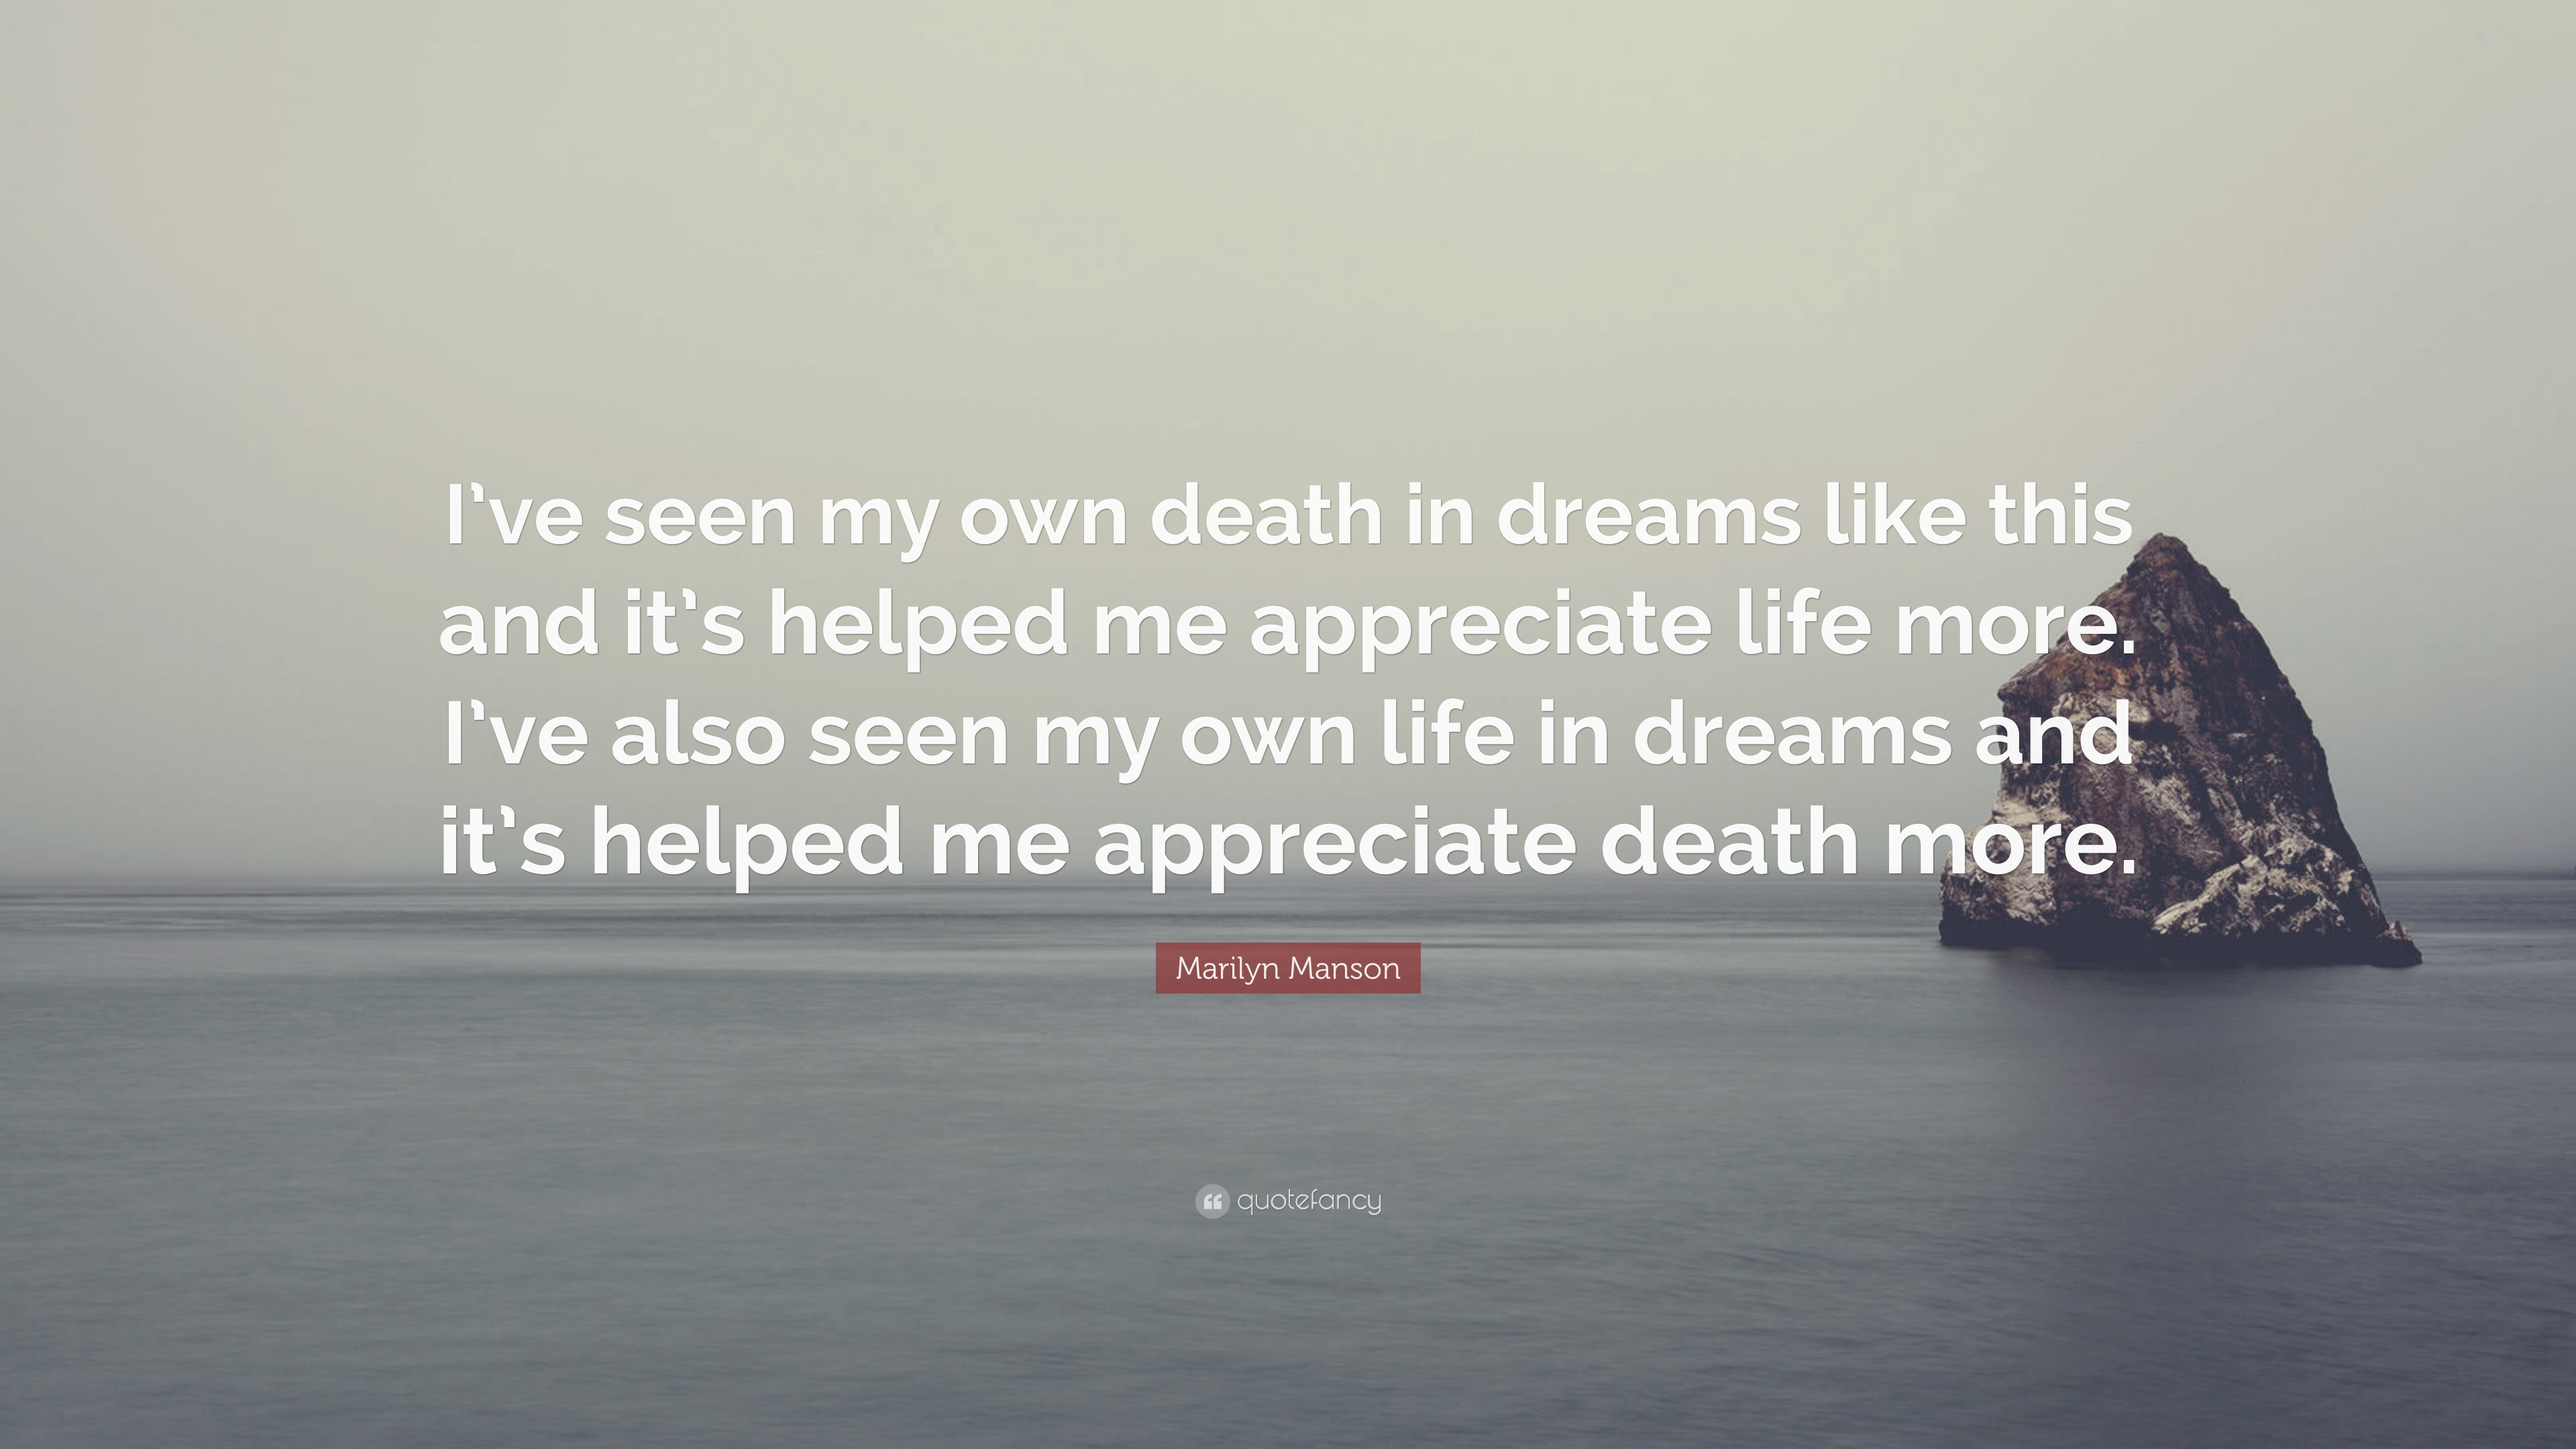 Why dream of own death